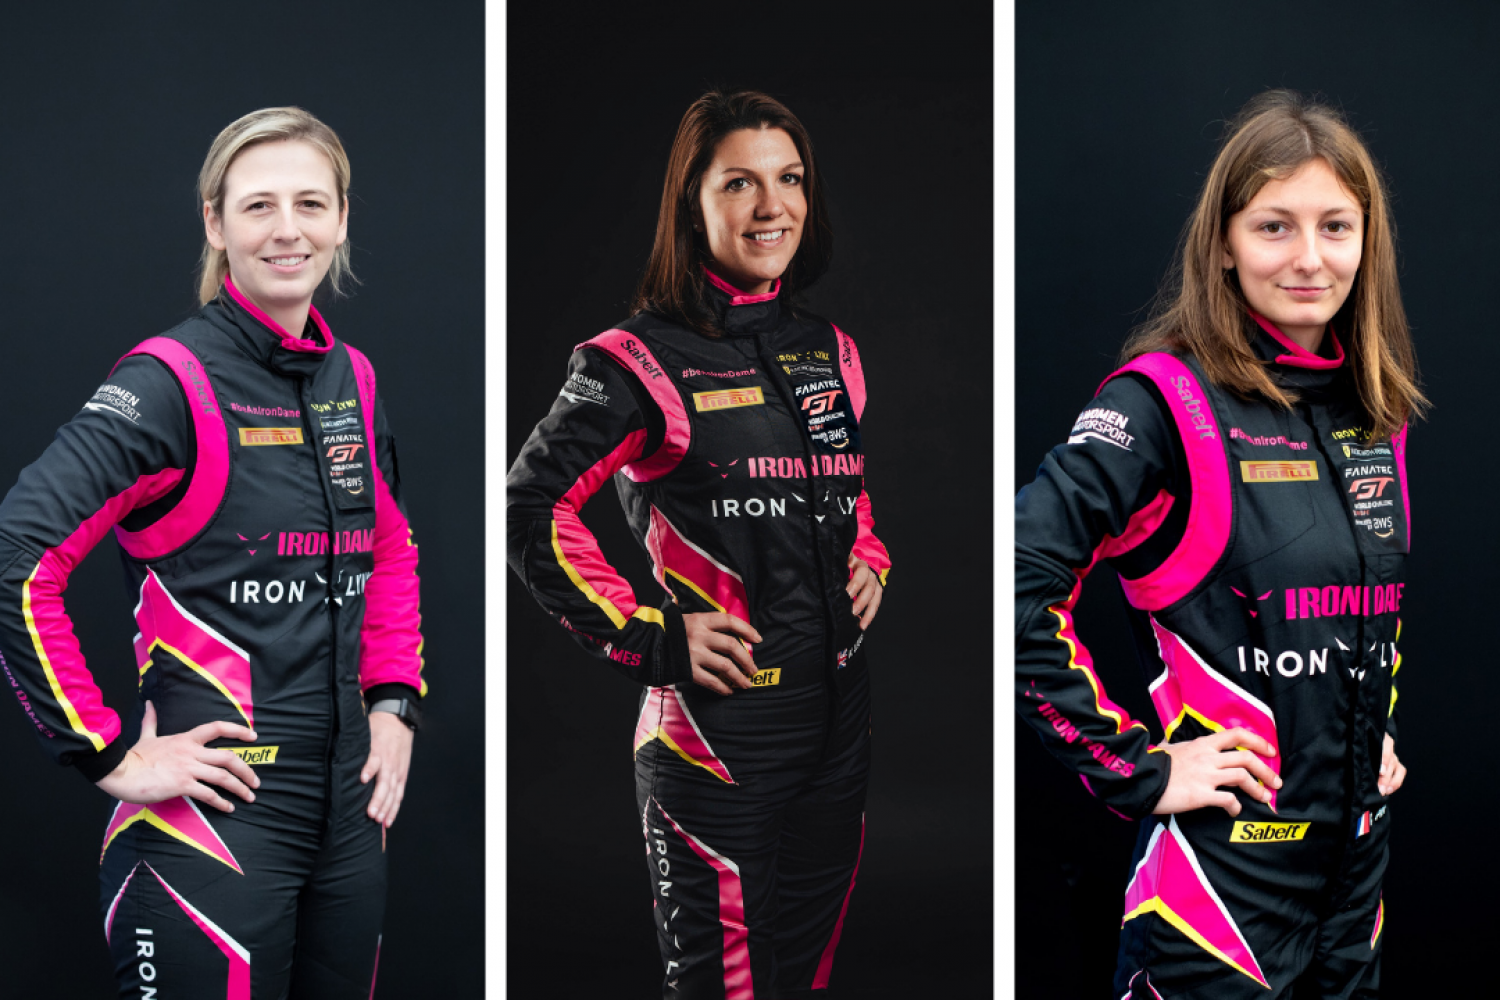 Iron Dames to field first all-female crew at Circuit Paul Ricard 1000km